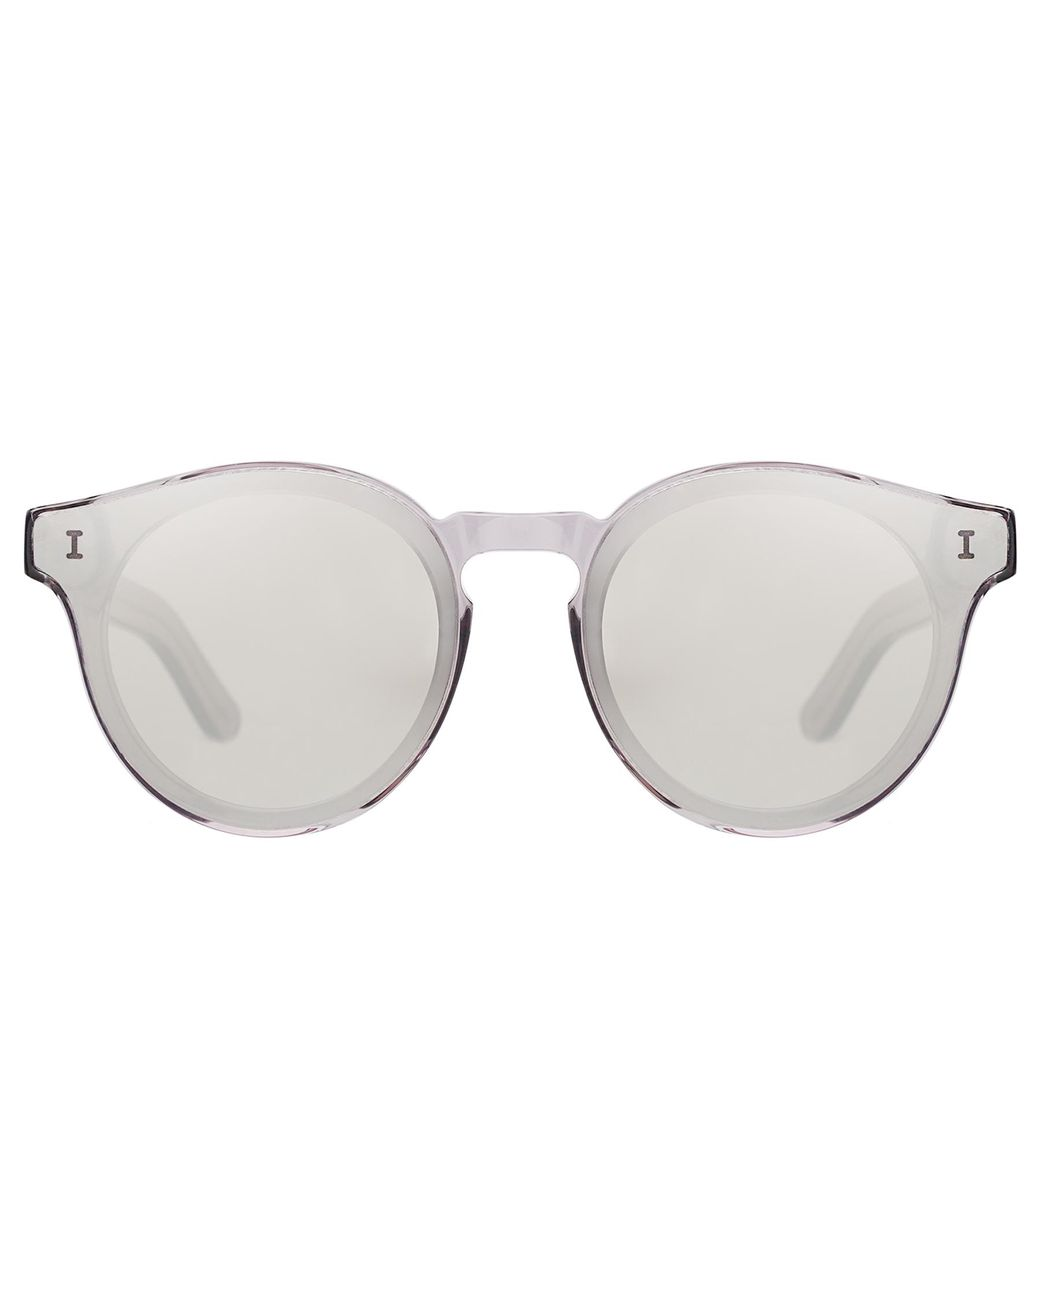 910ebb6eaaf5 Illesteva Two Point One Sunglasses in Metallic - Lyst